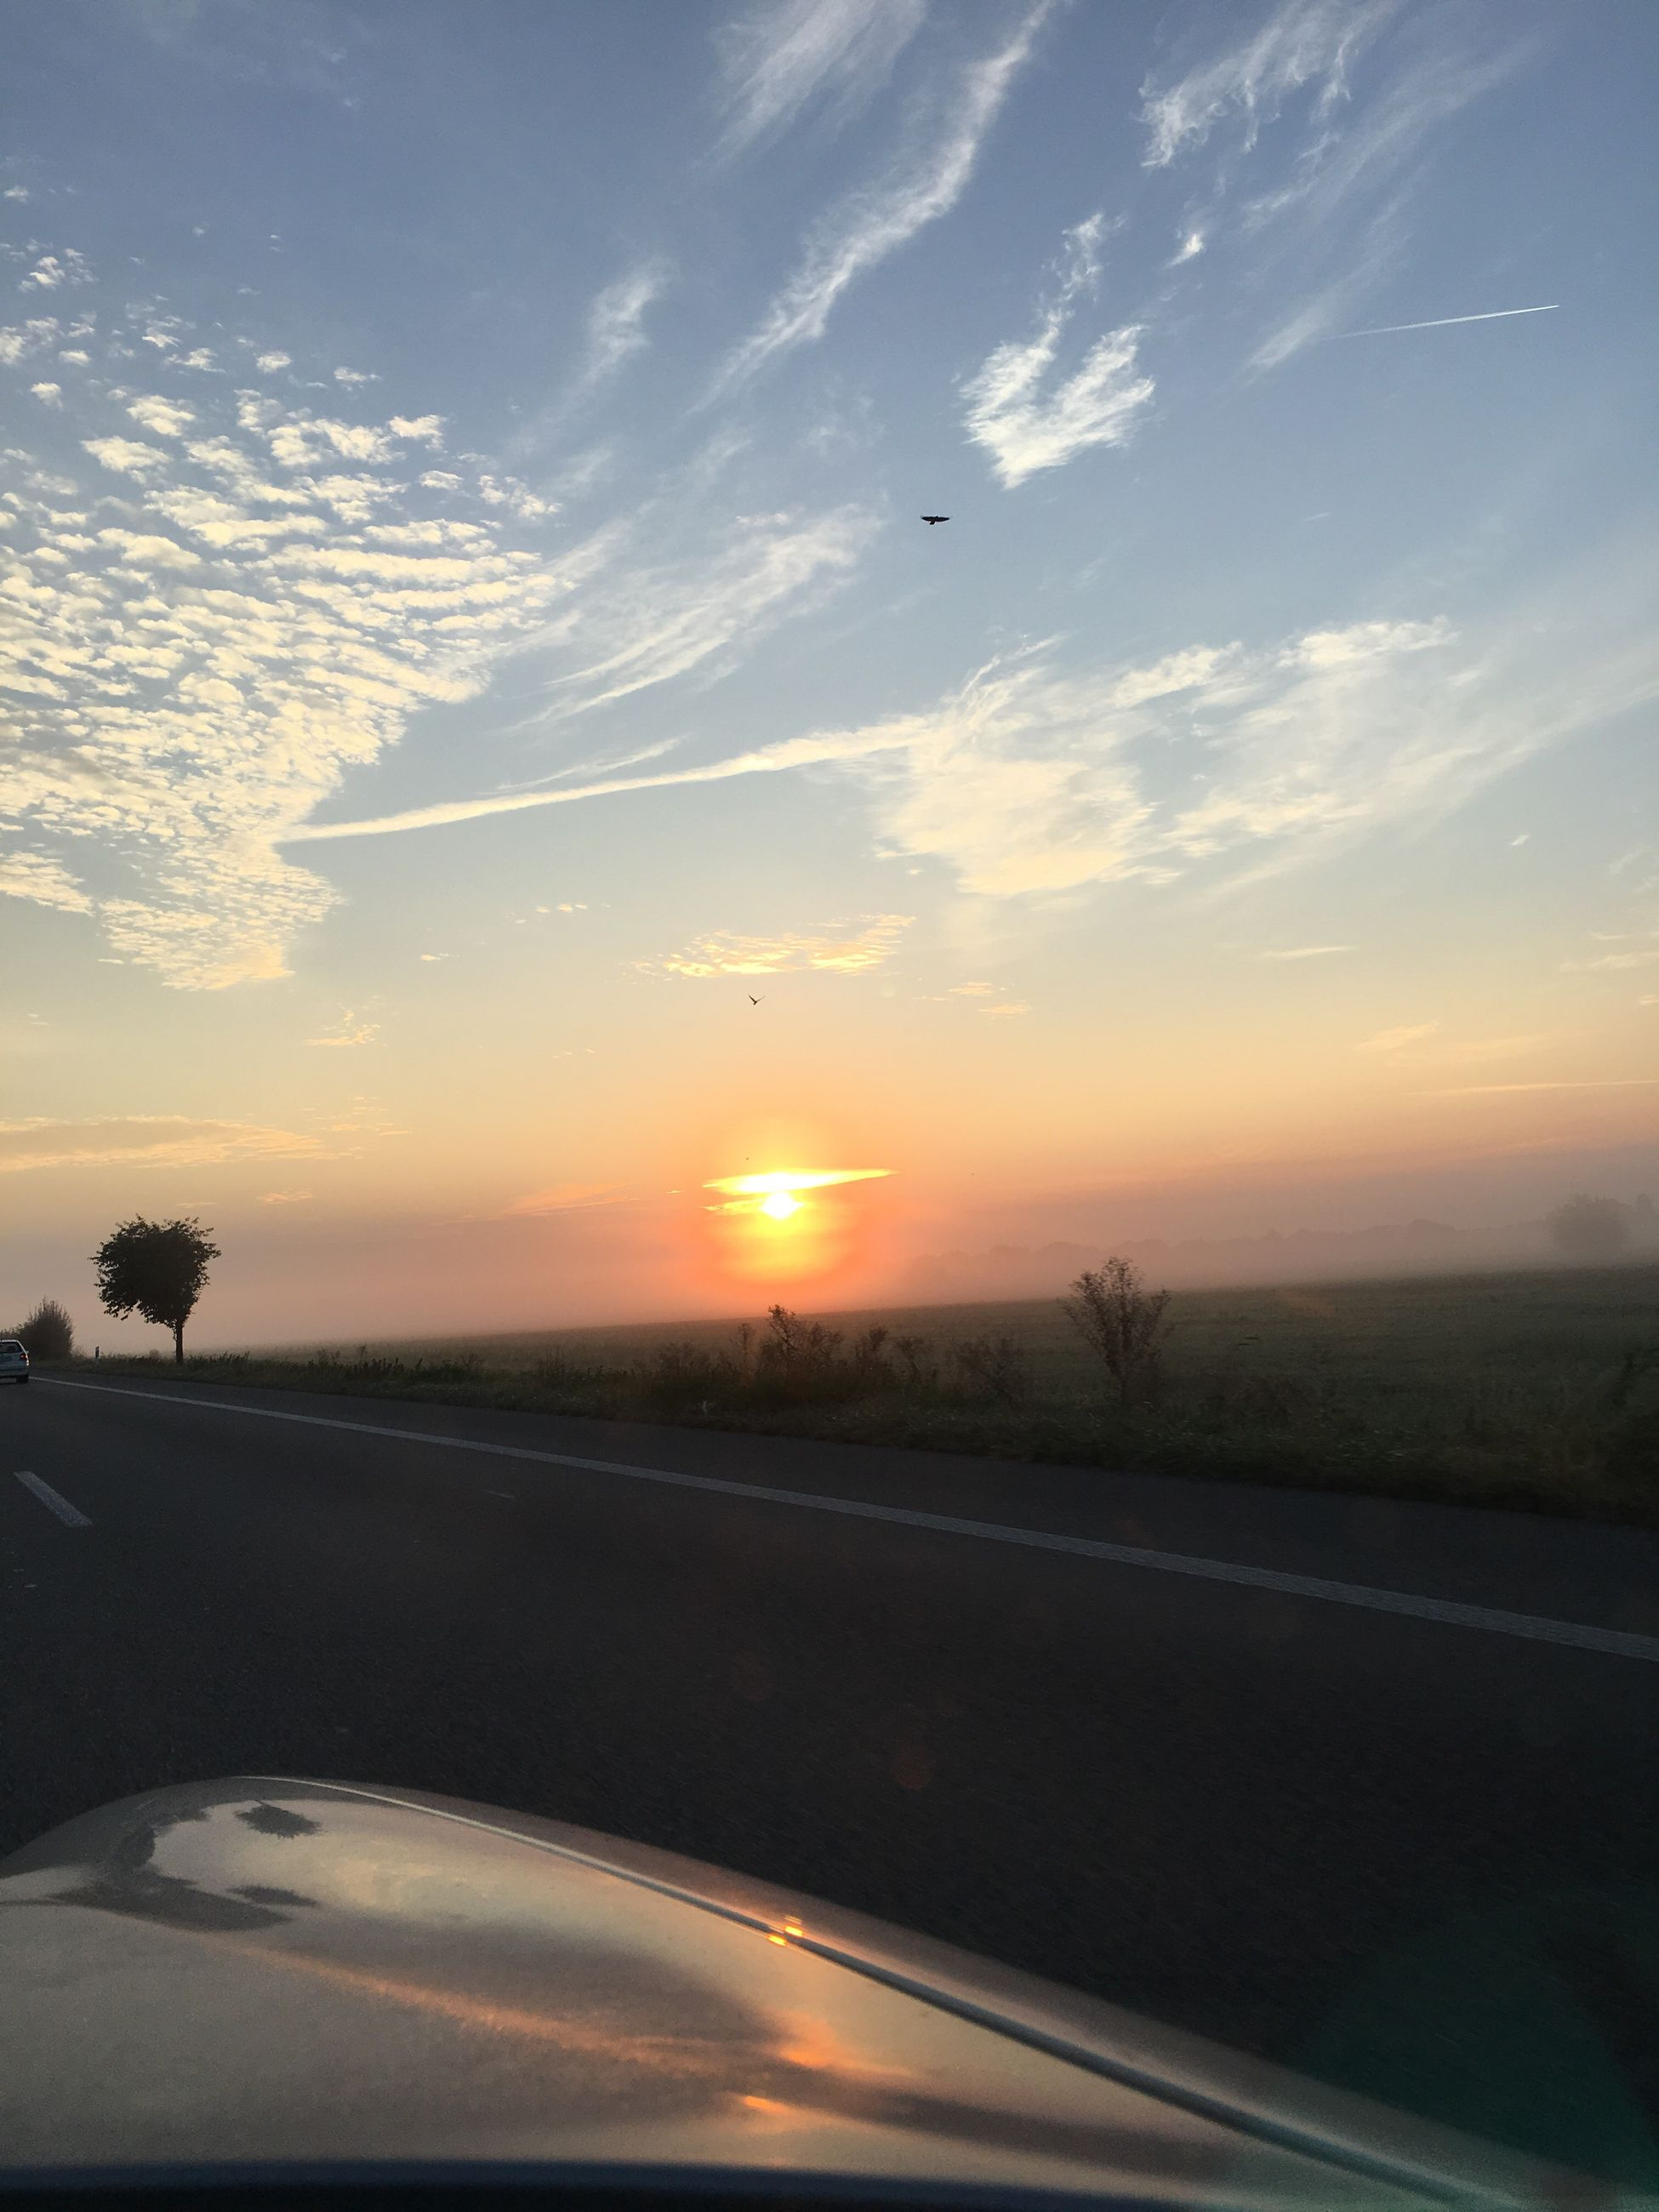 sunset, transportation, sun, landscape, road, car, tranquil scene, sky, scenics, orange color, cloud, tranquility, outdoors, nature, beauty in nature, solitude, the way forward, countryside, country road, non-urban scene, long, horizon over land, rural scene, no people